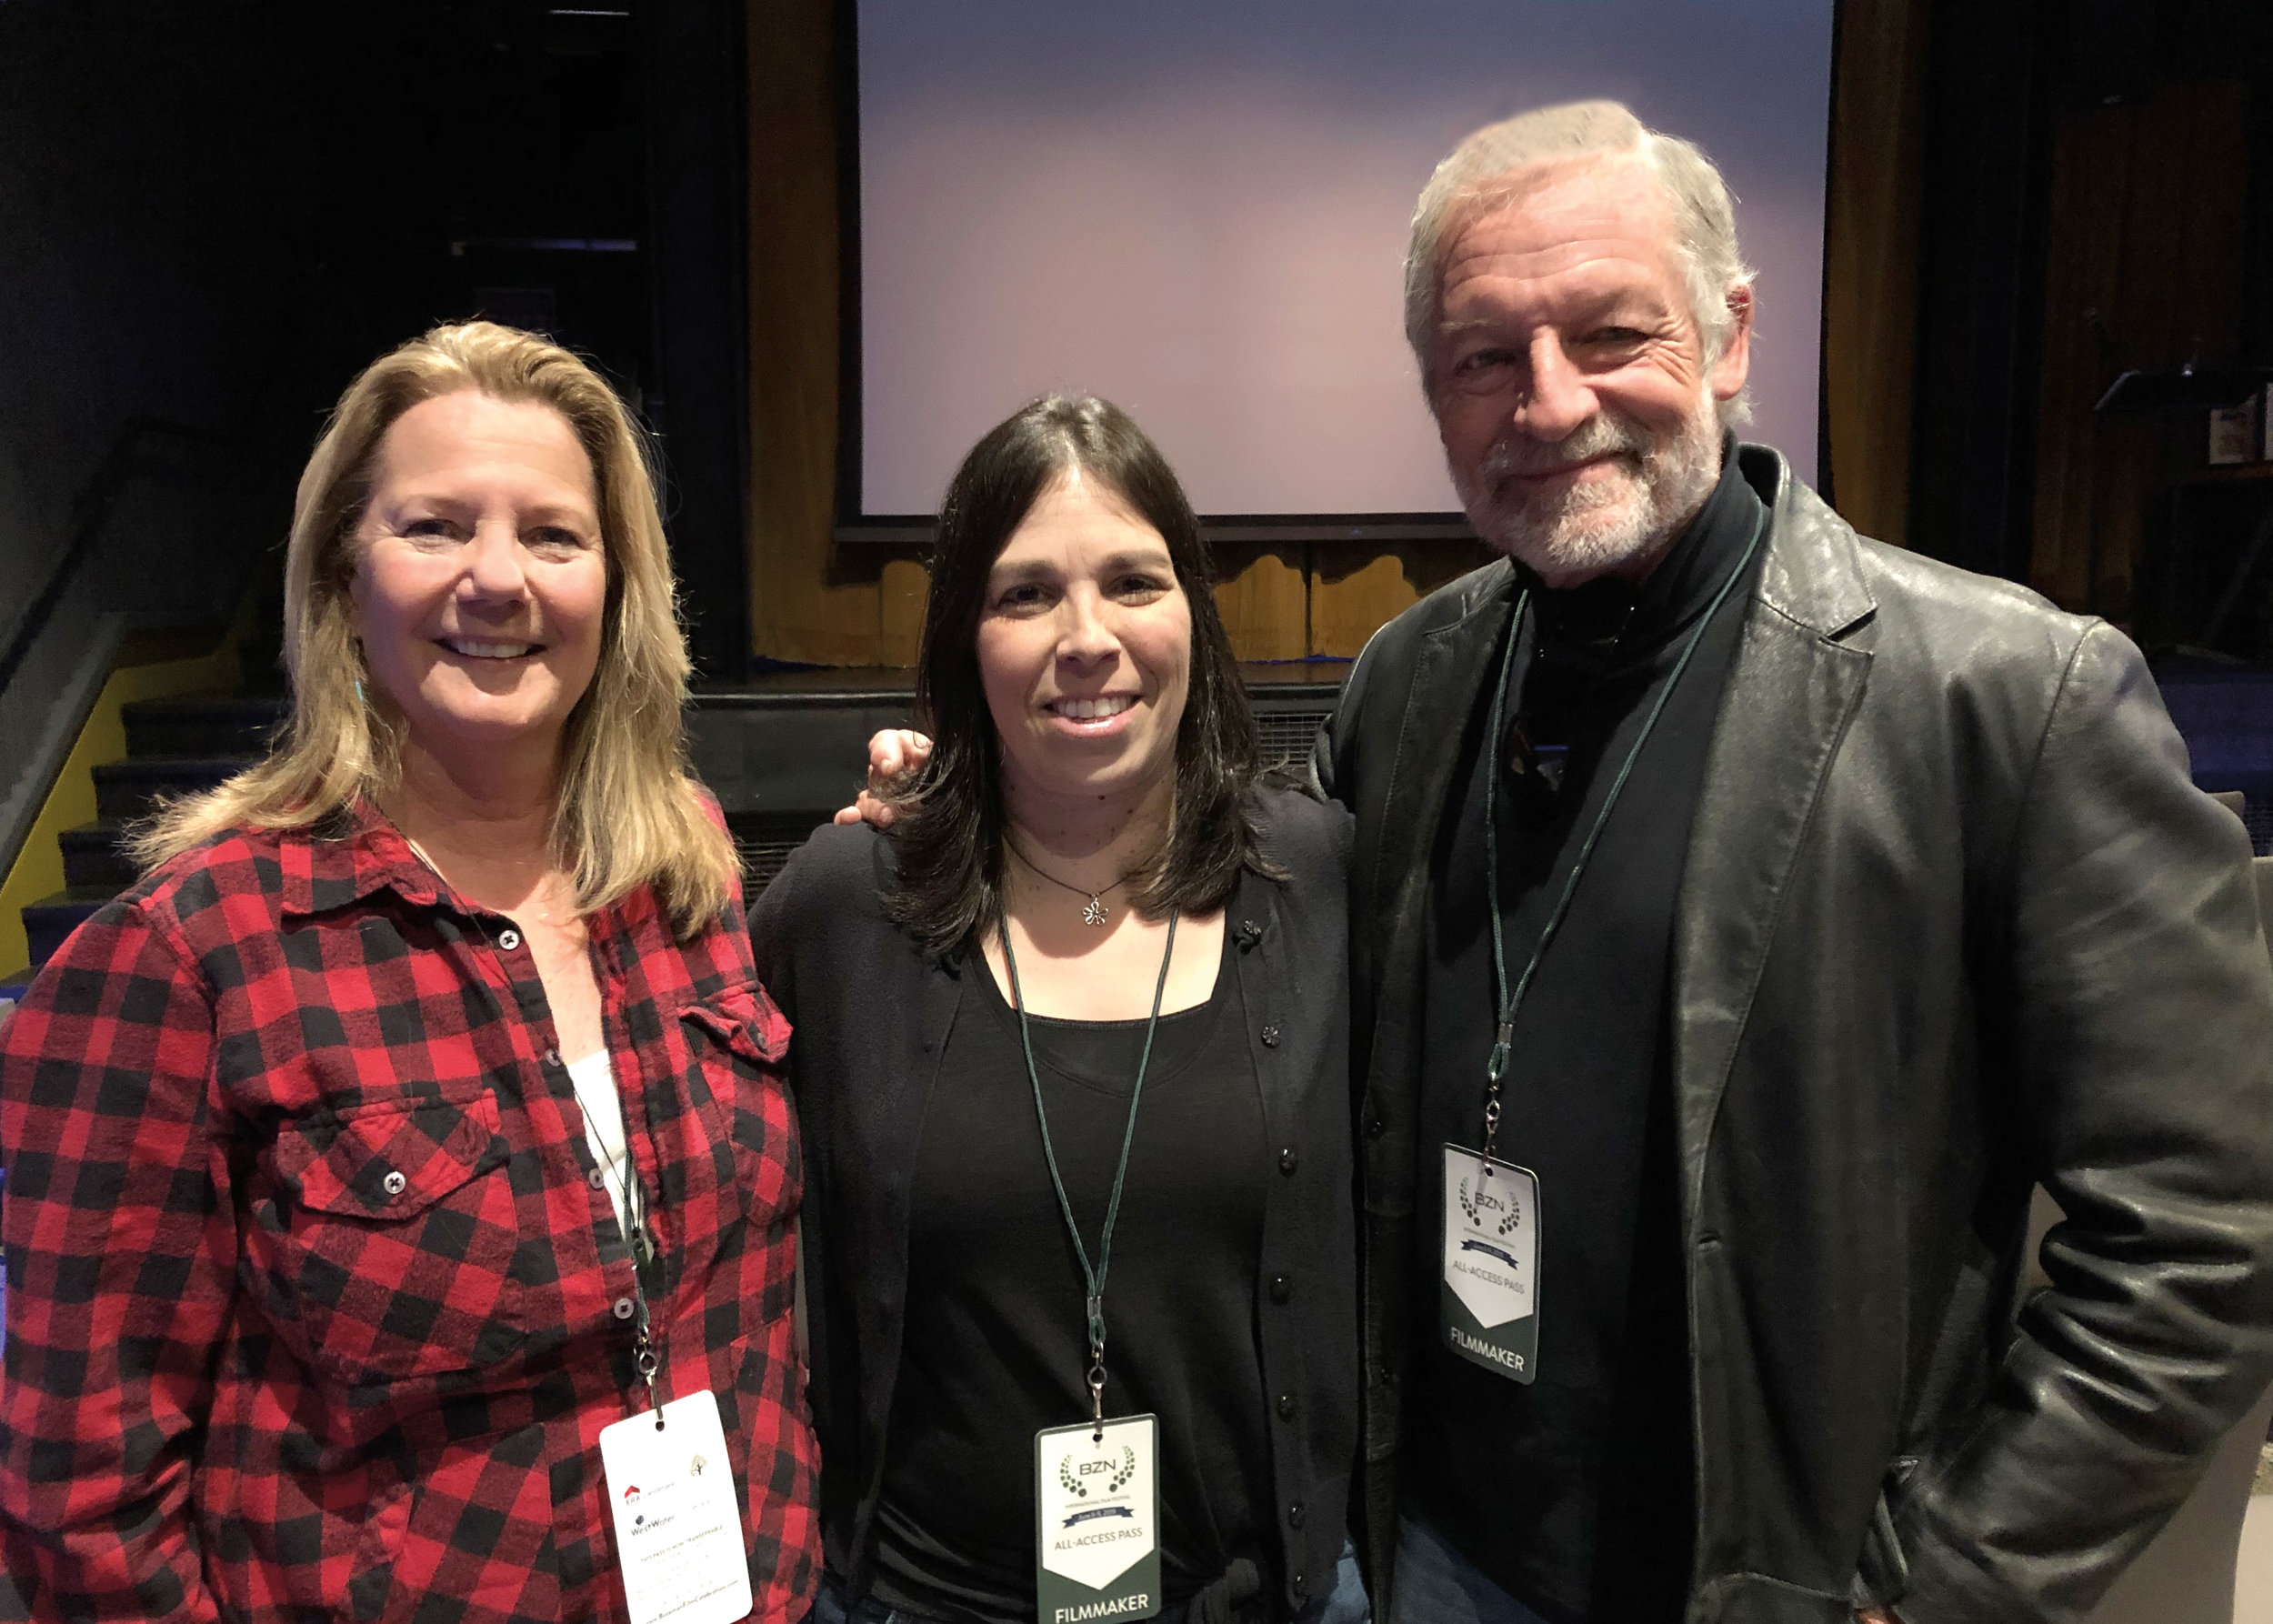 (L. to r.) Filmmakers Mimi Armstrong deGruy '75, Jana Brown (editor of Alumni Horae), and Perry King '66 met at BZN Film Celebration in Bozeman, Mont.